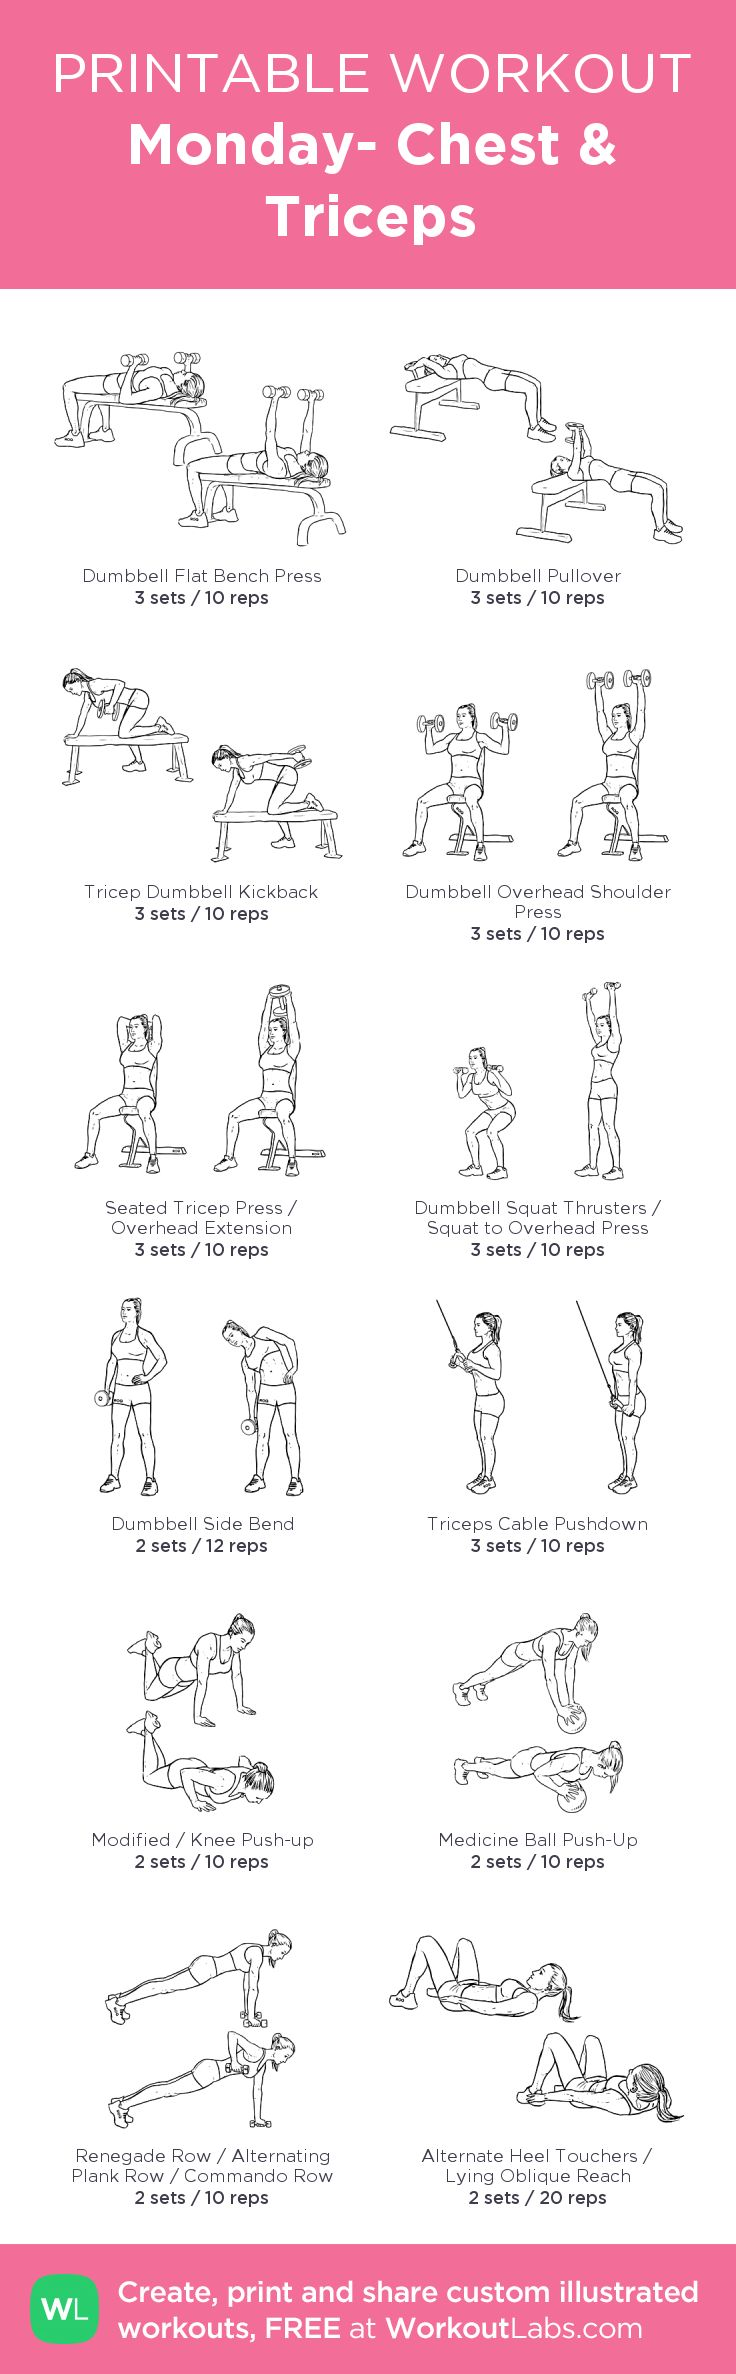 Monday- Chest & Triceps: my visual workout created at WorkoutLabs.com • Click through to customize and download as a FREE PDF! #customworkout